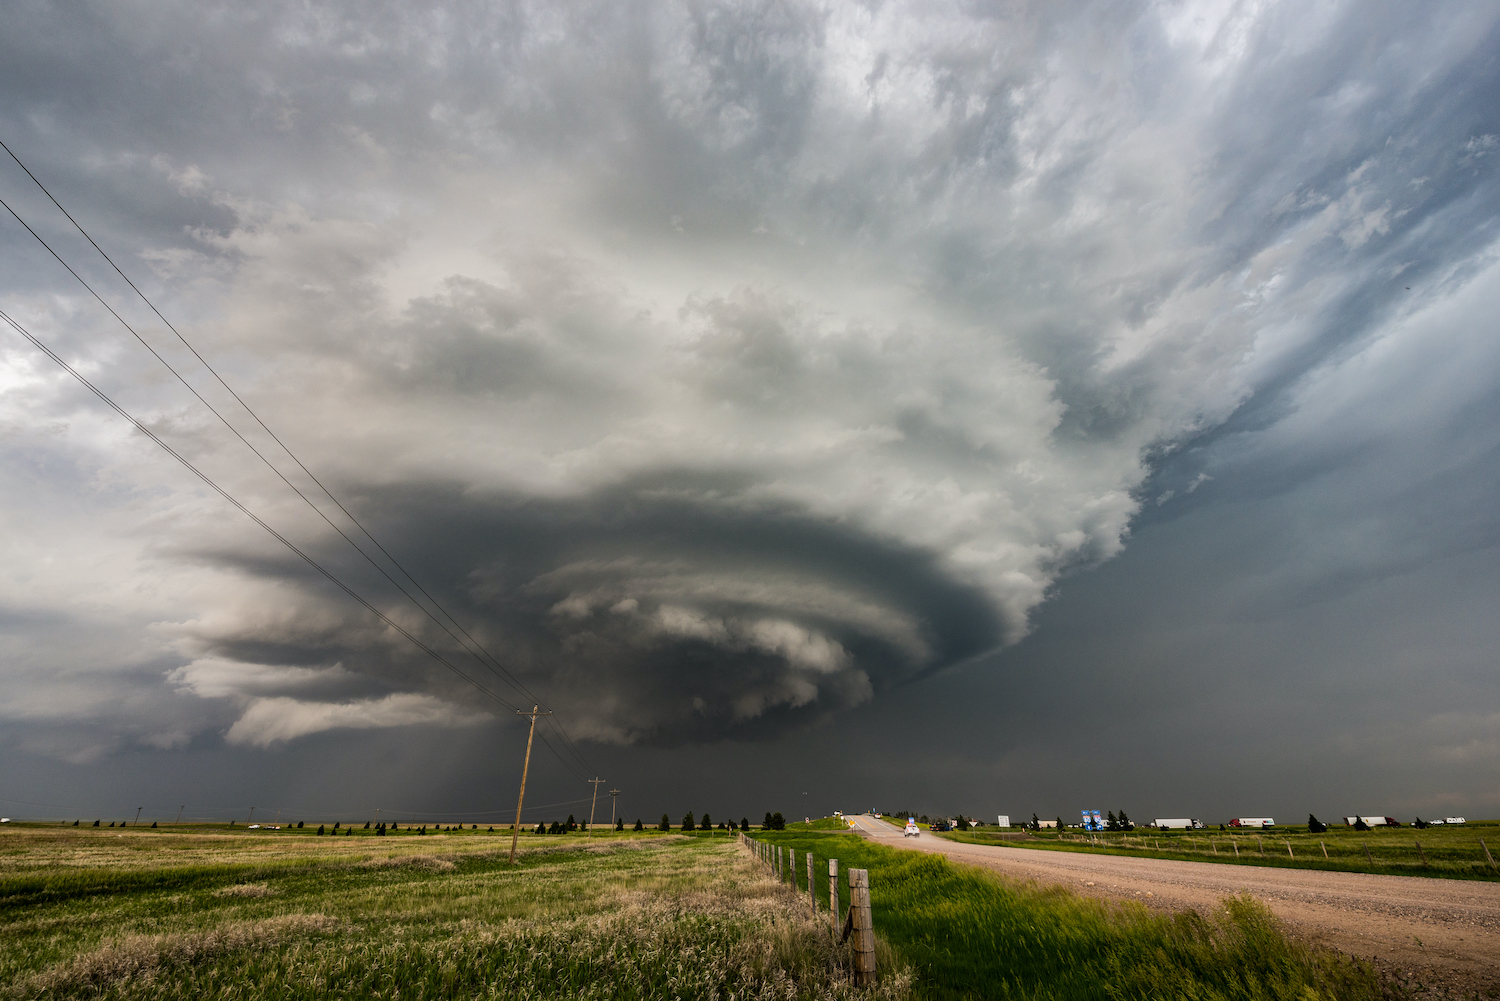 A tornado cell as it begins to form.